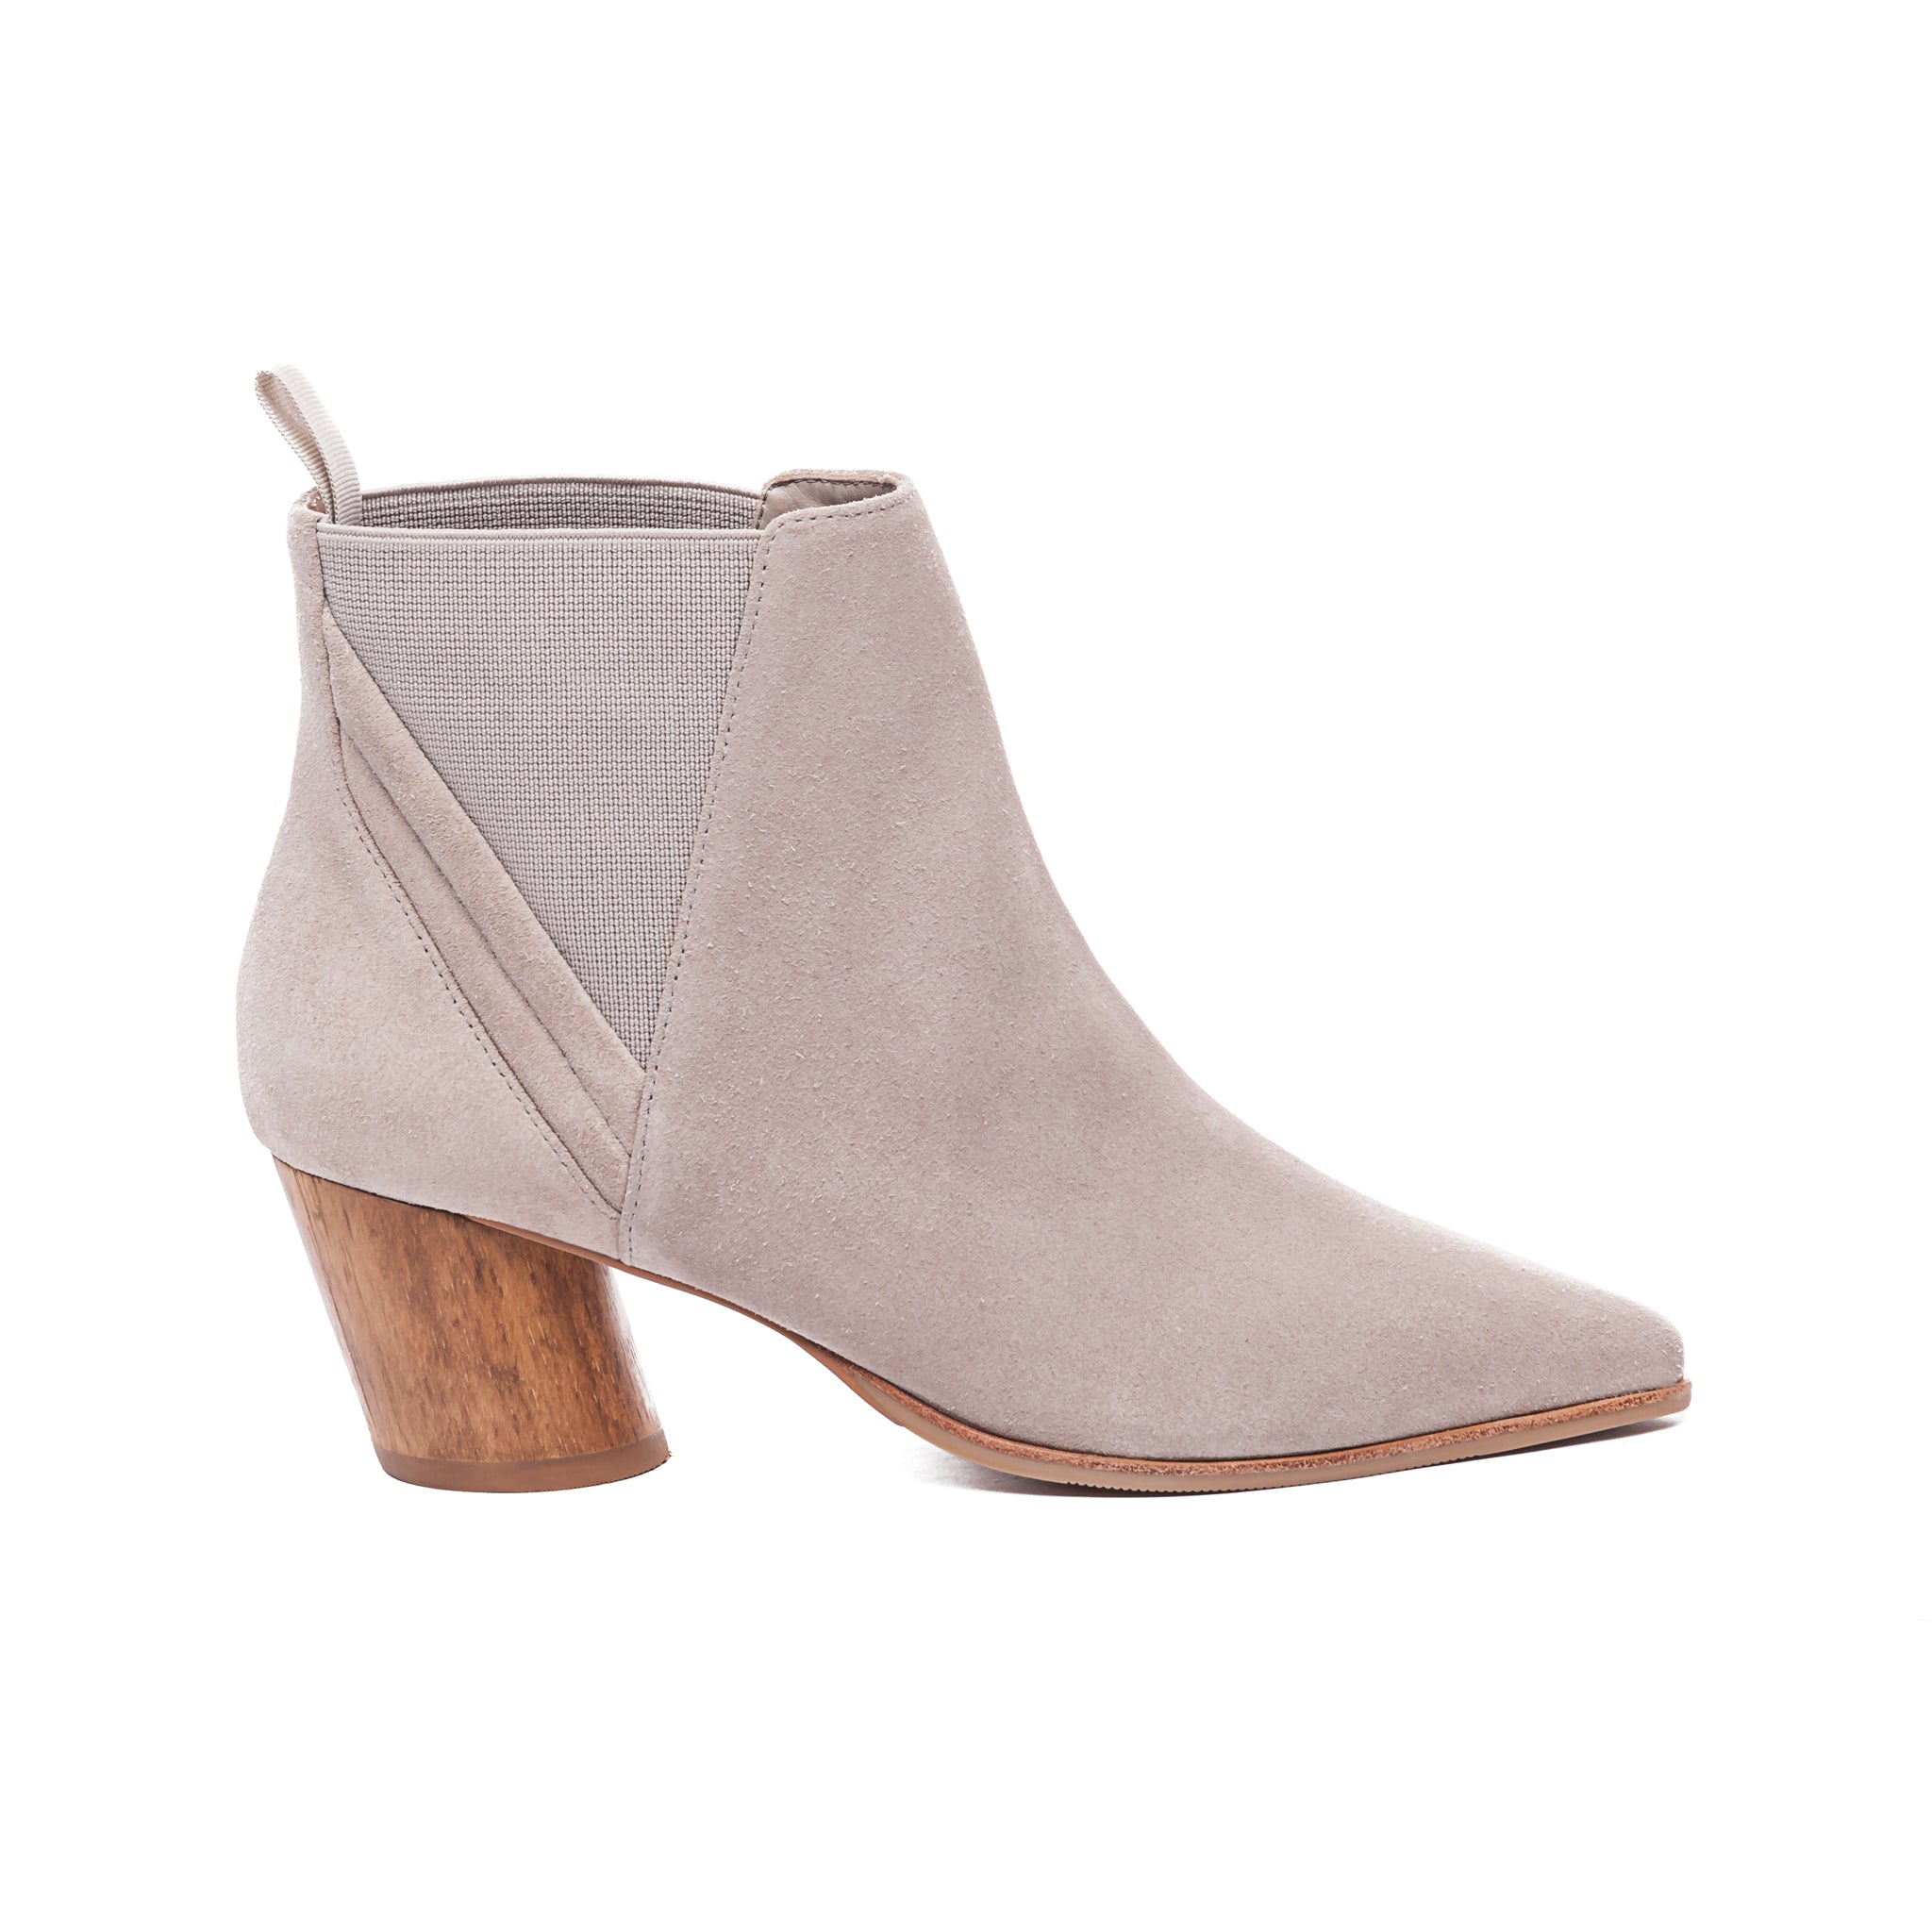 clay colored Ferris ankle boot with a wood heel